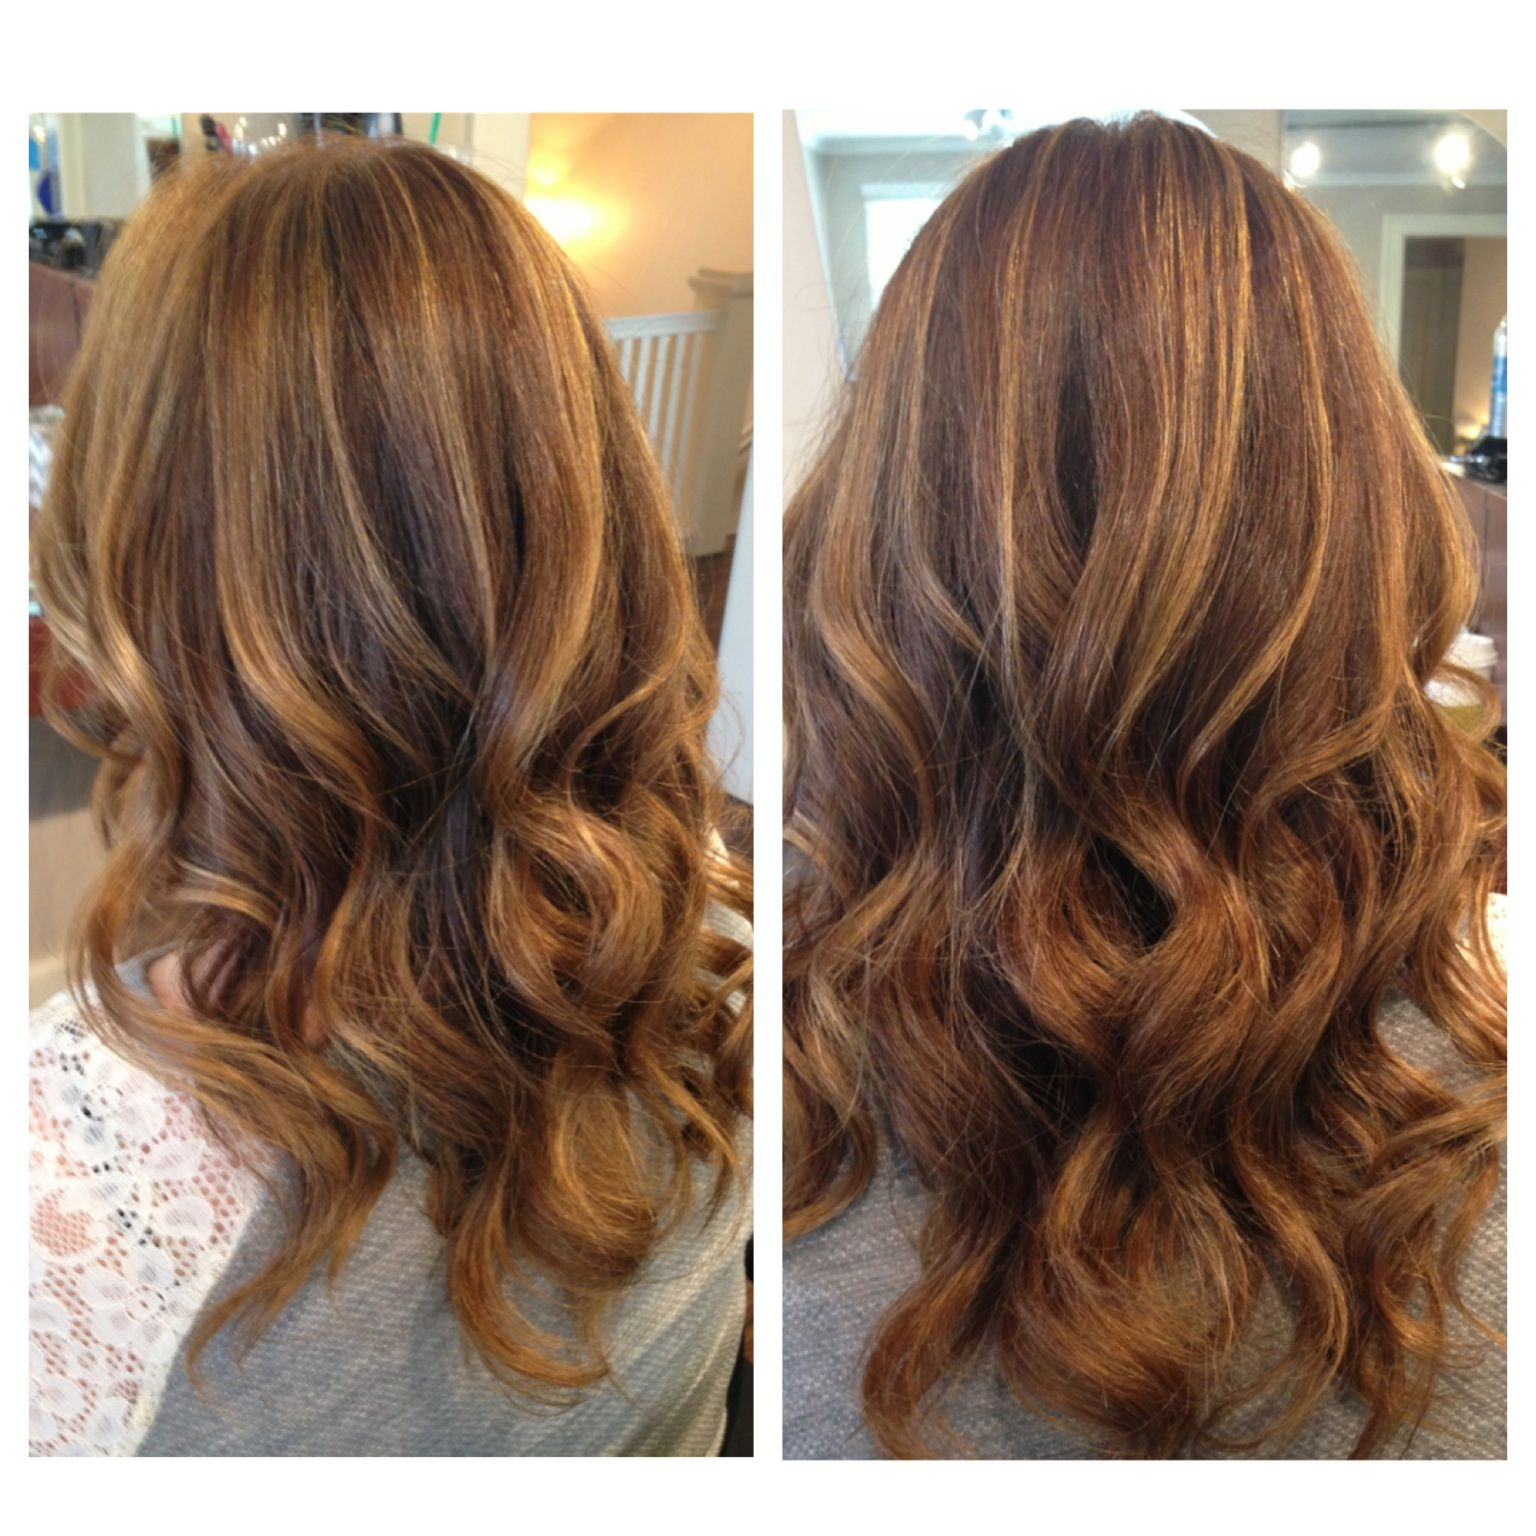 Golden Copper And Golden Blonde Highlights All With Balayage Throughout A Natural Brunette F Colored Hair Tips Balayage Hair Blonde Medium Balayage Hair Copper